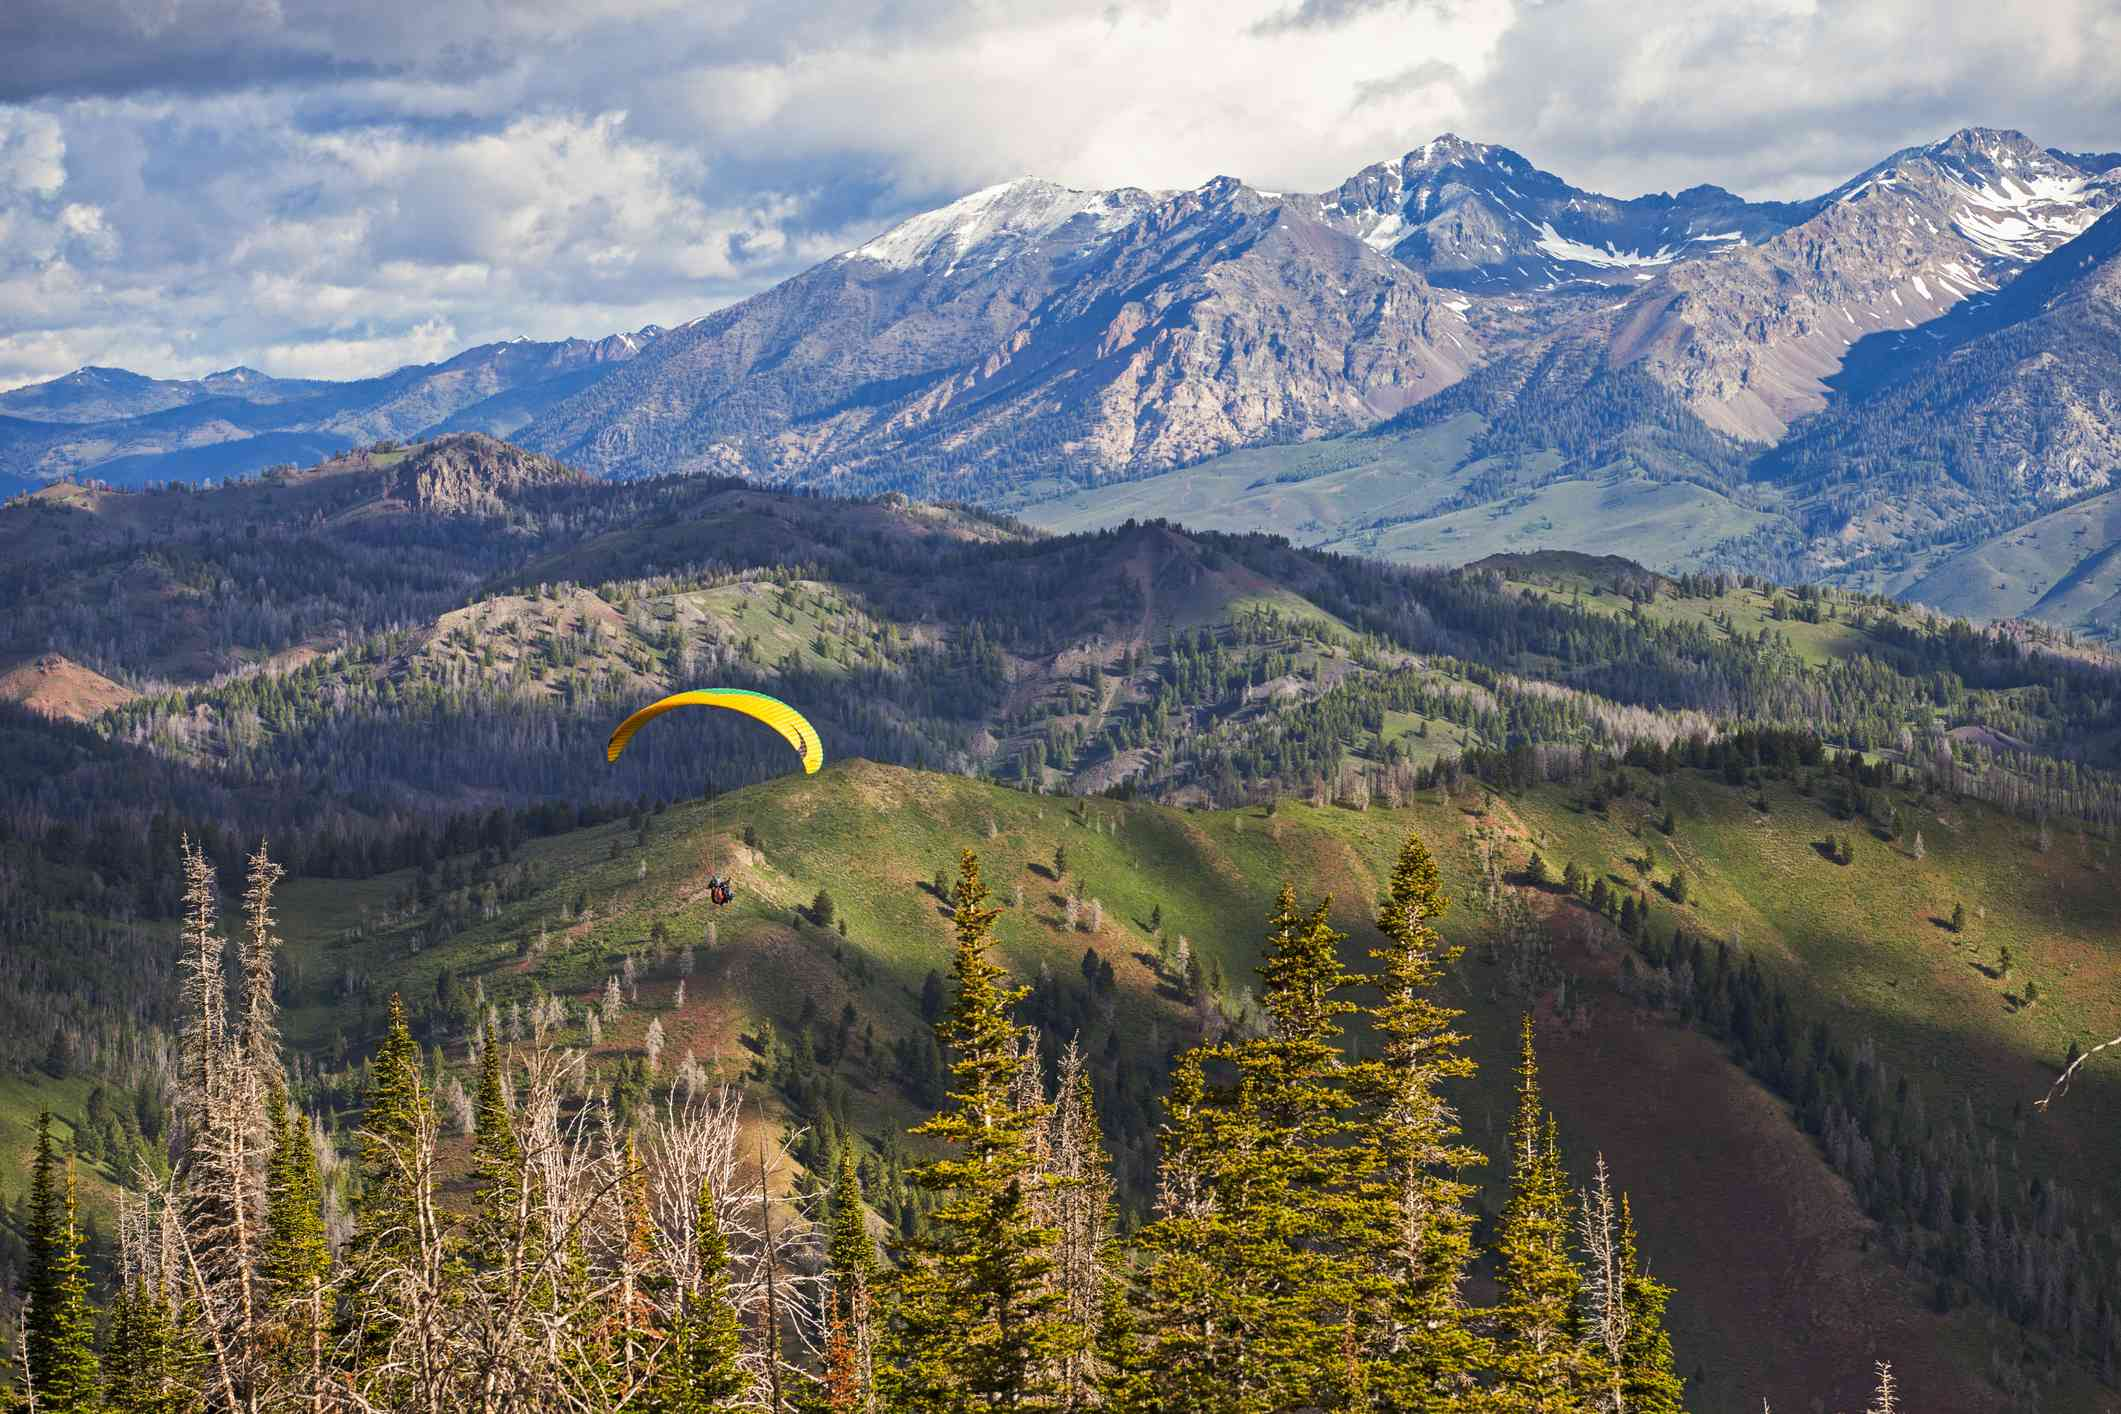 mountain landscape with pine trees and paraglider in foreground